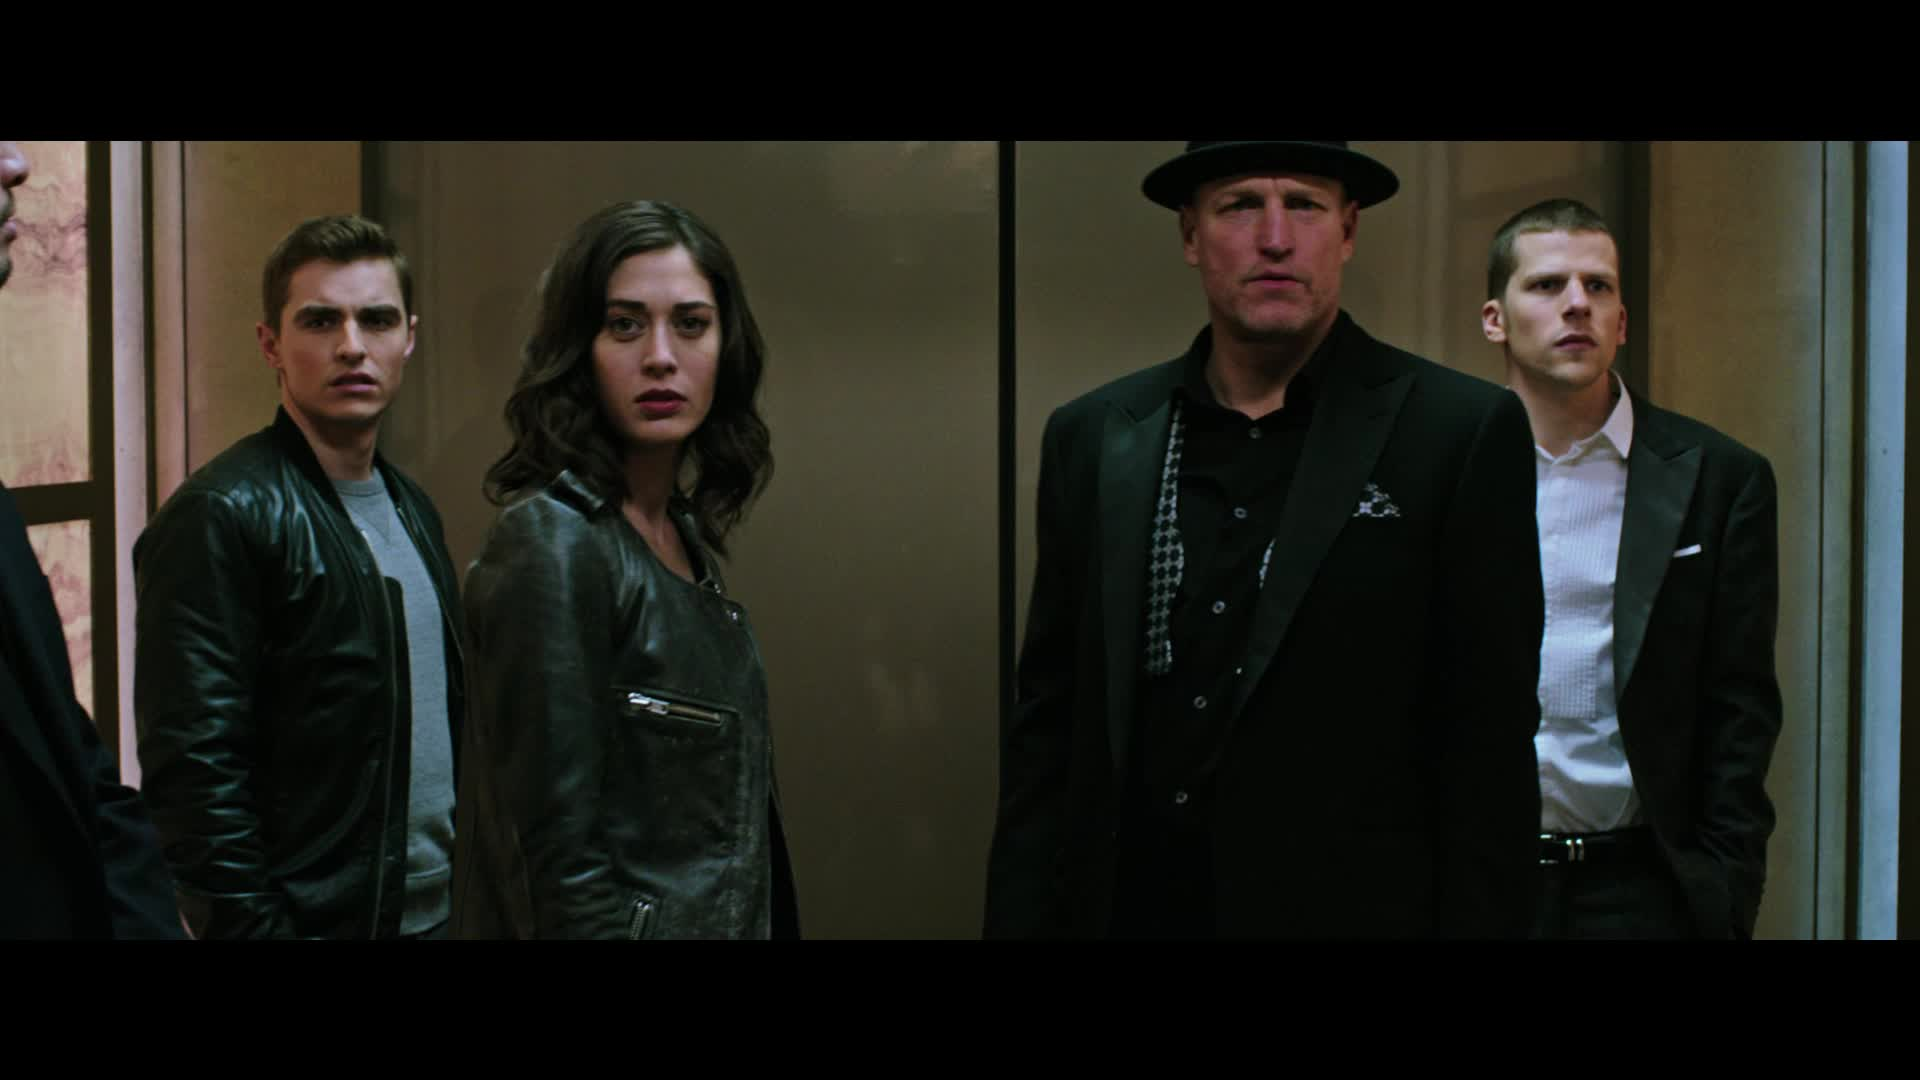 italian movie dubbed in italian free download Now You See Me 2